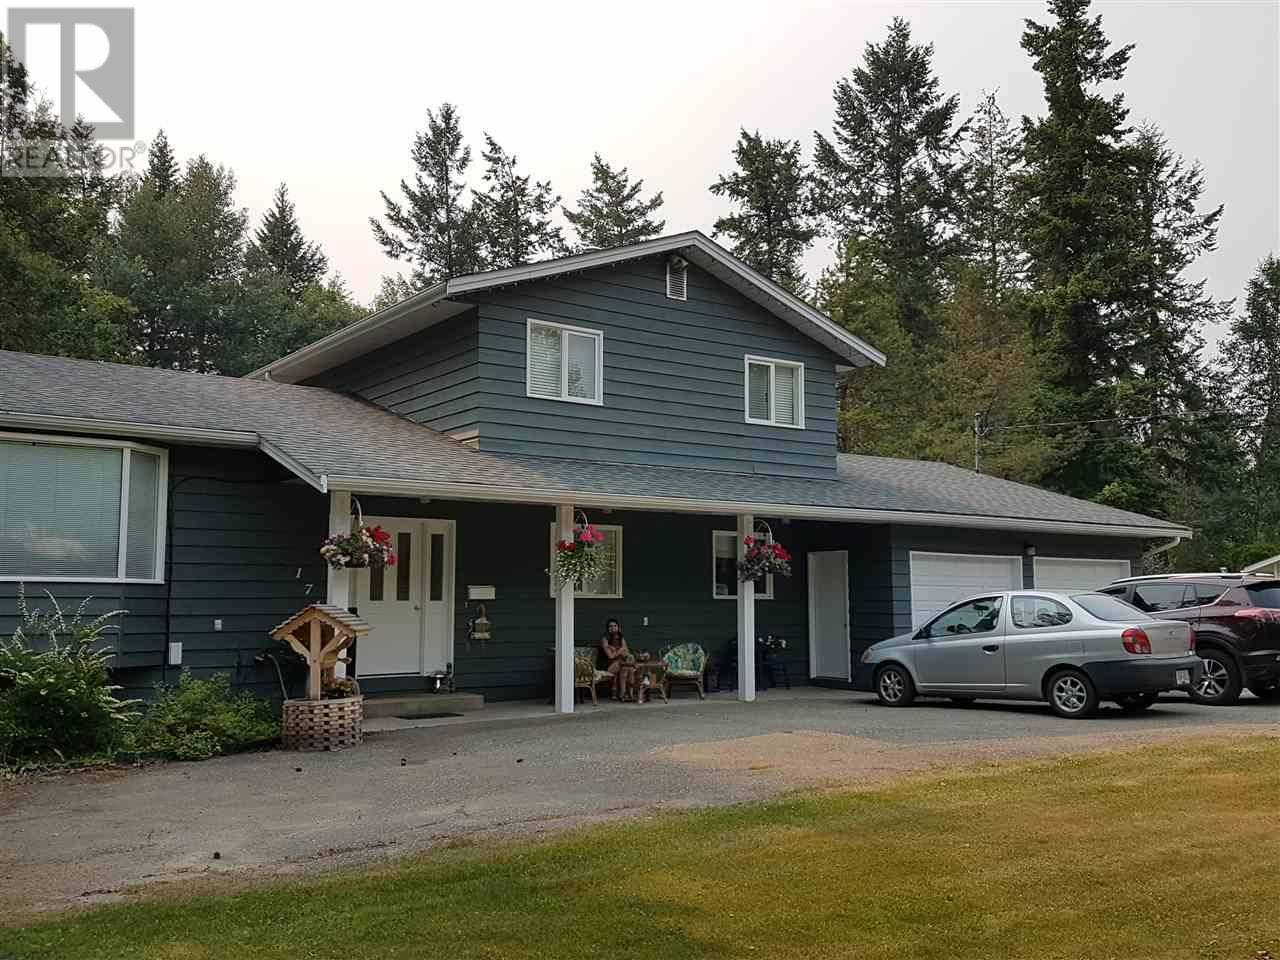 House for sale at 171 Phillips Rd N Quesnel British Columbia - MLS: R2438875